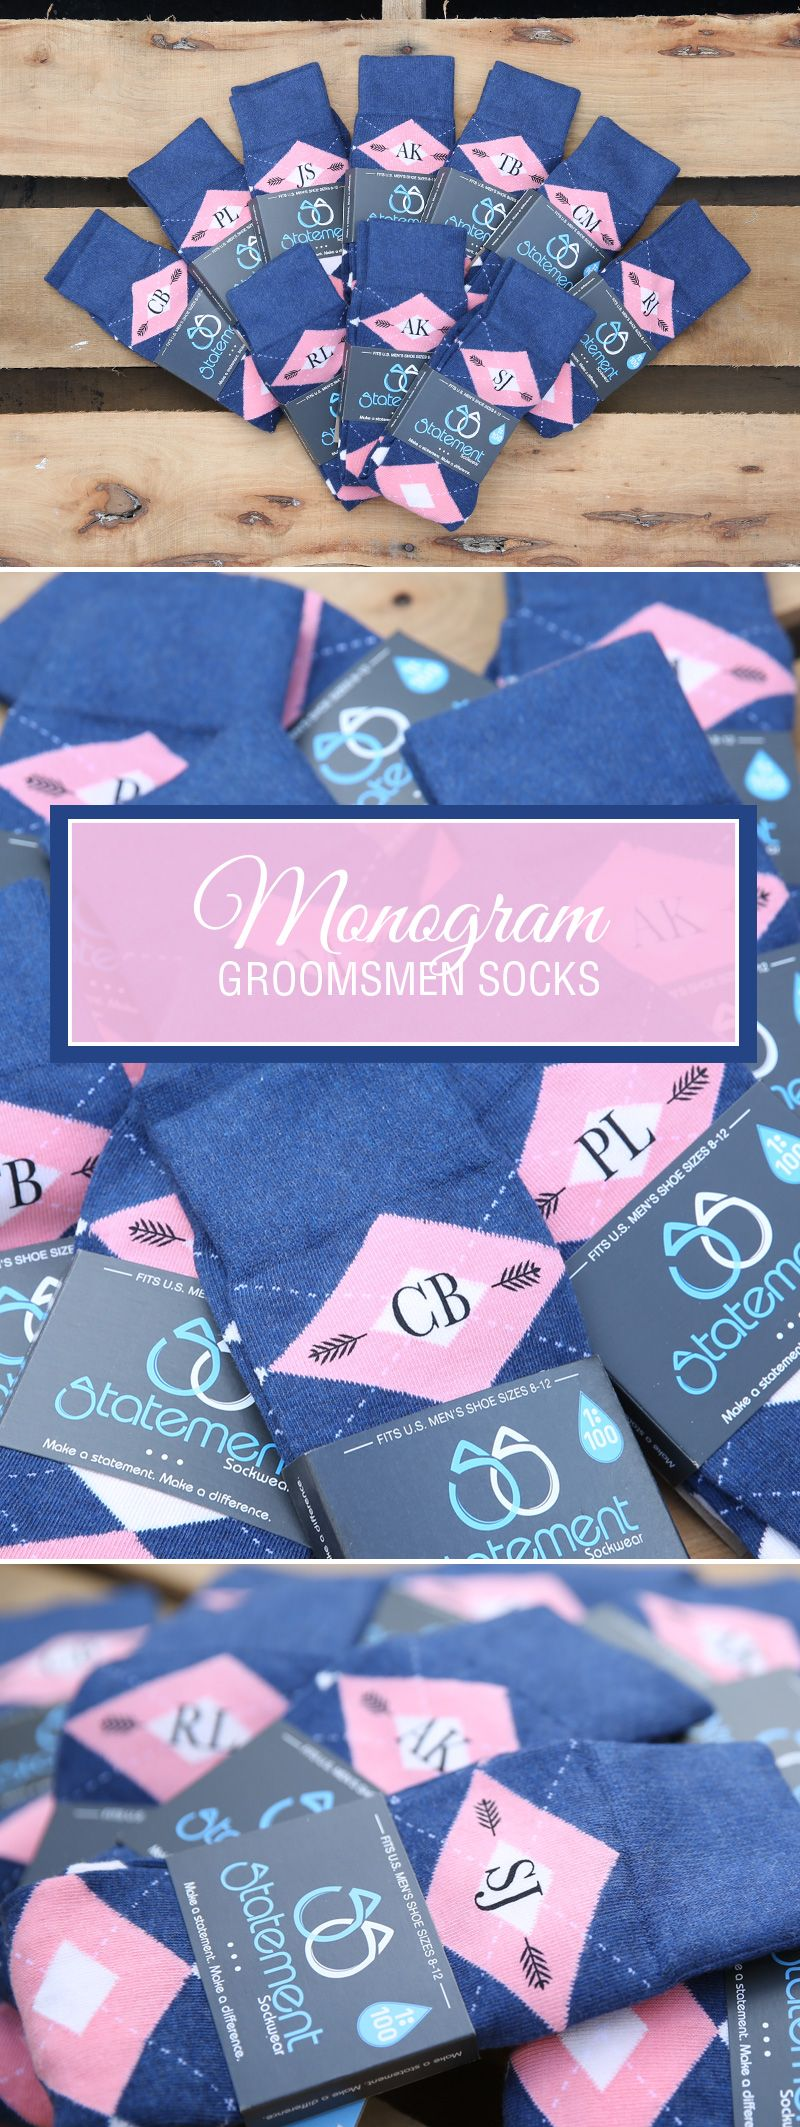 f92b2bbeb0b5 Our flamingo blush petal pink and navy groomsmen dress socks are one of our  personal favorites. The classy combination of navy and pink offers the  perfect ...